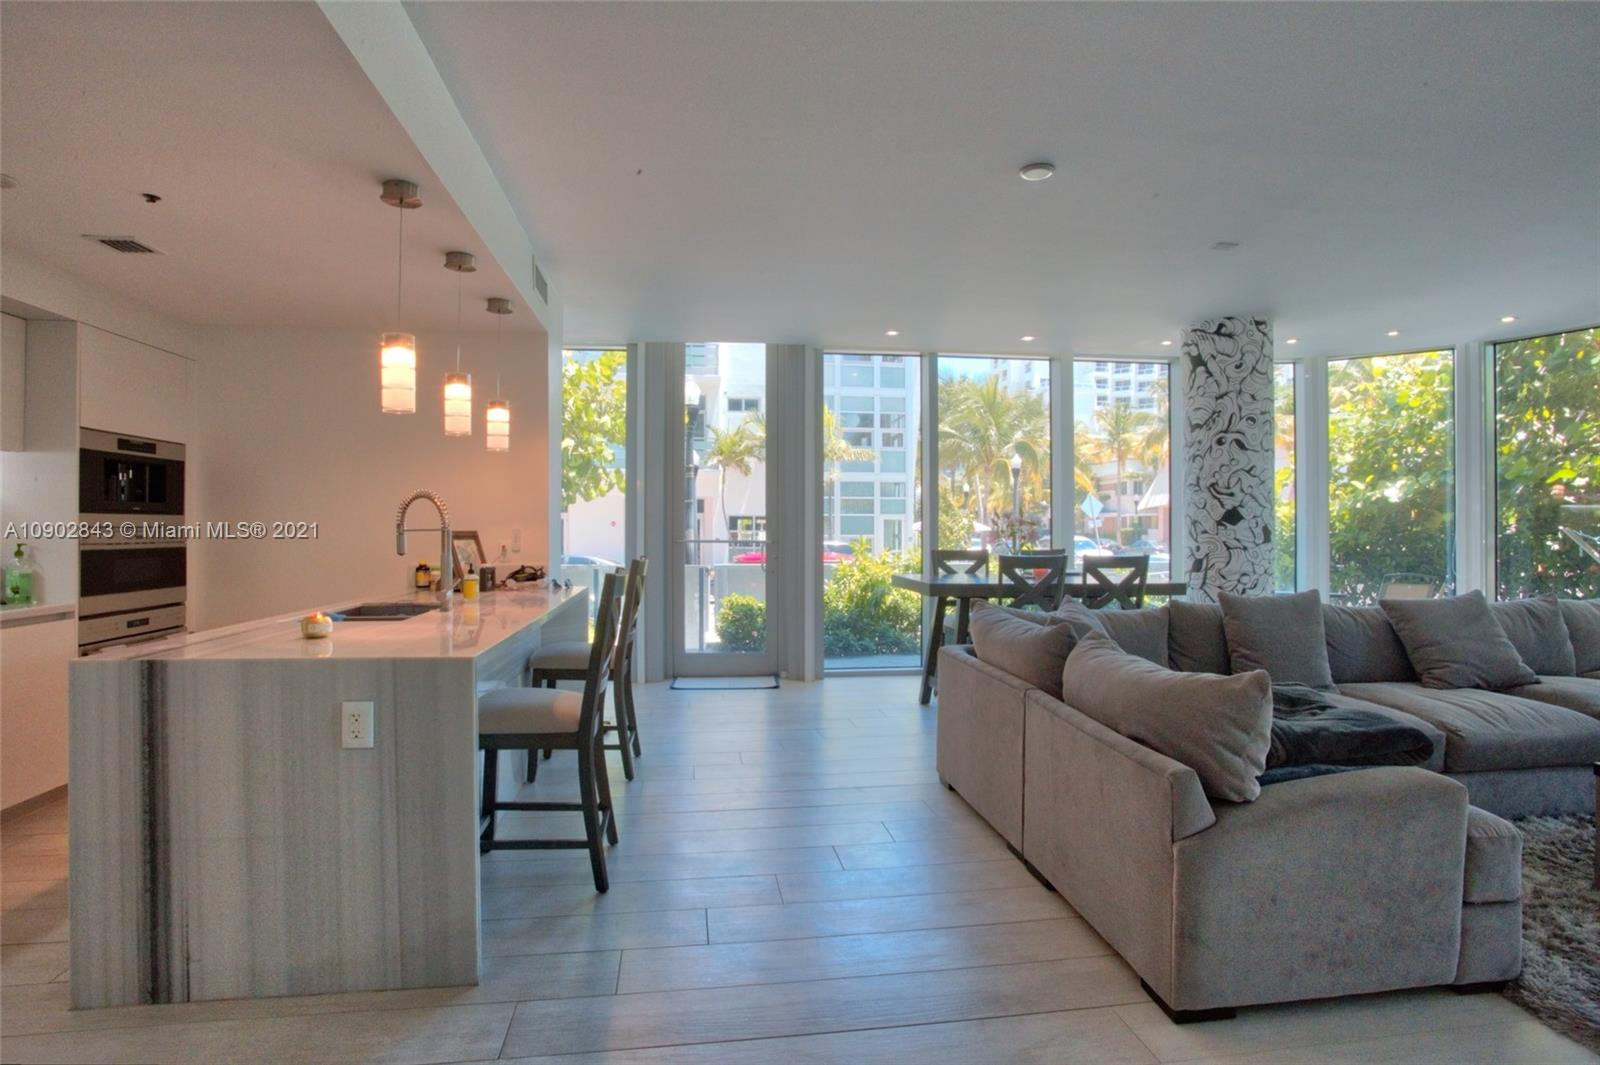 UNIQUE and EXCLUSIVE LANAI, 12 FOOT CEILINGS. A must-see impeccable corner unit. Feels like a residence but with all the amenities and services of a condo. The private garden wraps around the unit with ample space for outdoor living areas in an enclosed gated private garden. The condo has 2 entrances, one from the building lobby & A Private entrance from 1st street and Ocean Drive gated door. Spacious 2 beds/2.5 bath Corner residence with over 1,790 sq ft. Walk to all the best restaurants and nightlife of South of Fifth. Amenities include an infinity-edge pool deck, state-of-the-art fitness center, an outdoor clubhouse, a zen park, exclusive Private Beach Club membership at the Bentley Beach, and 24-hour on-site concierge service. Amazing OPEN Kitchen with GAS Stove.    Easy to Show!!